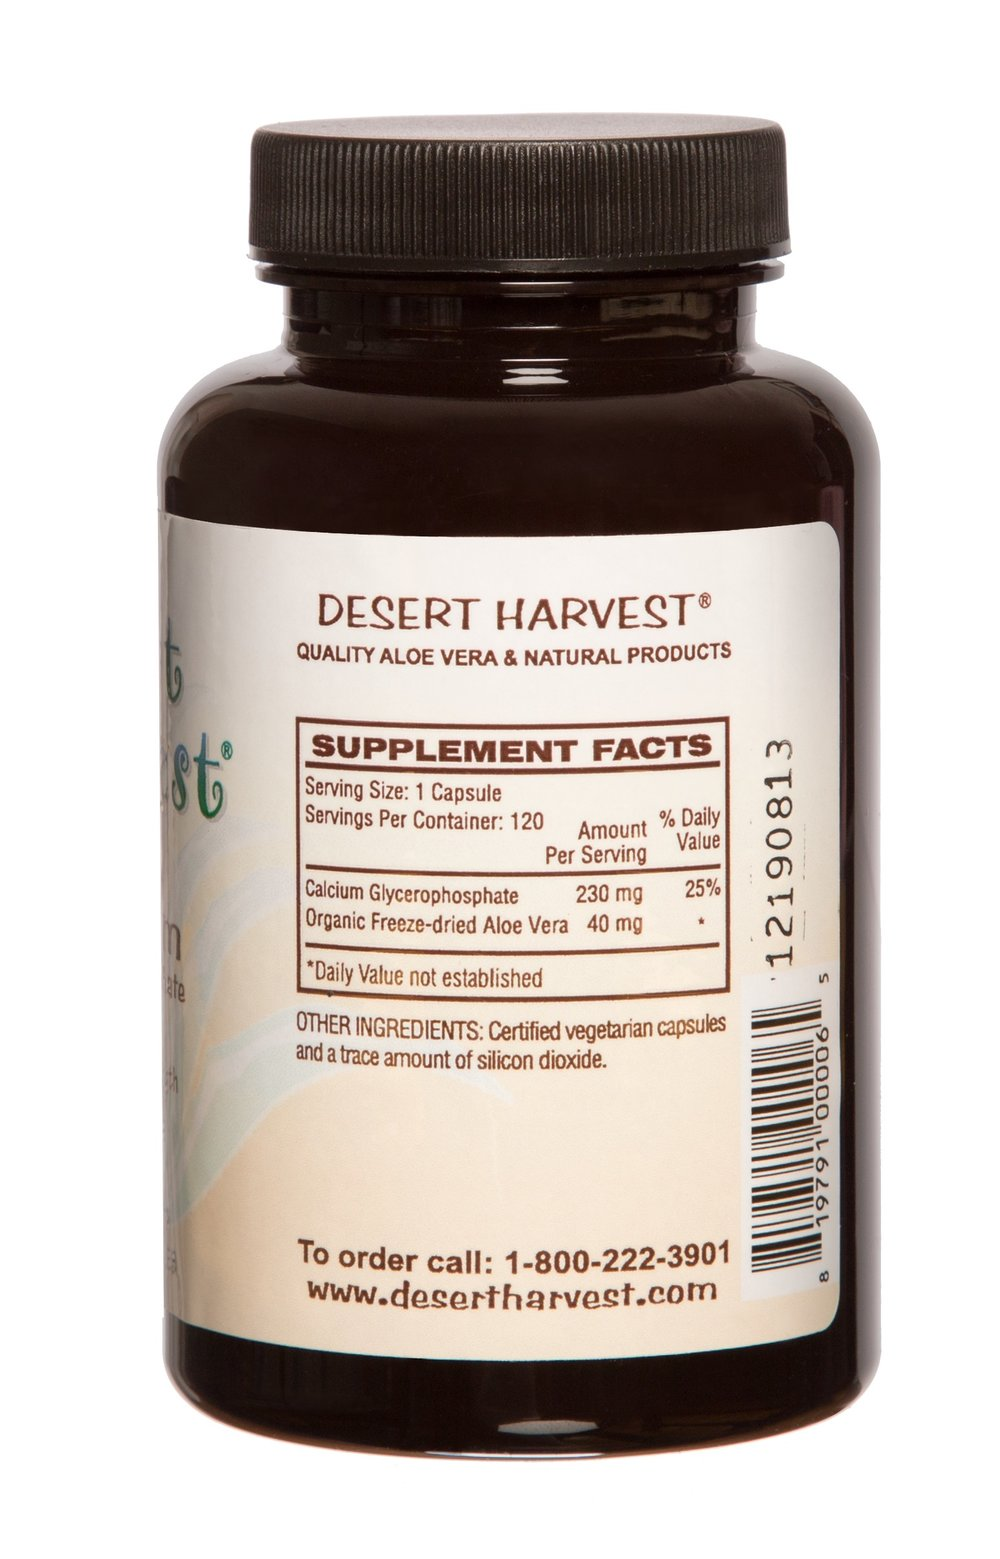 Only one capsule of Desert Harvest Calcium Glycerophosphate is required per serving, compared to two Prelief capsules.